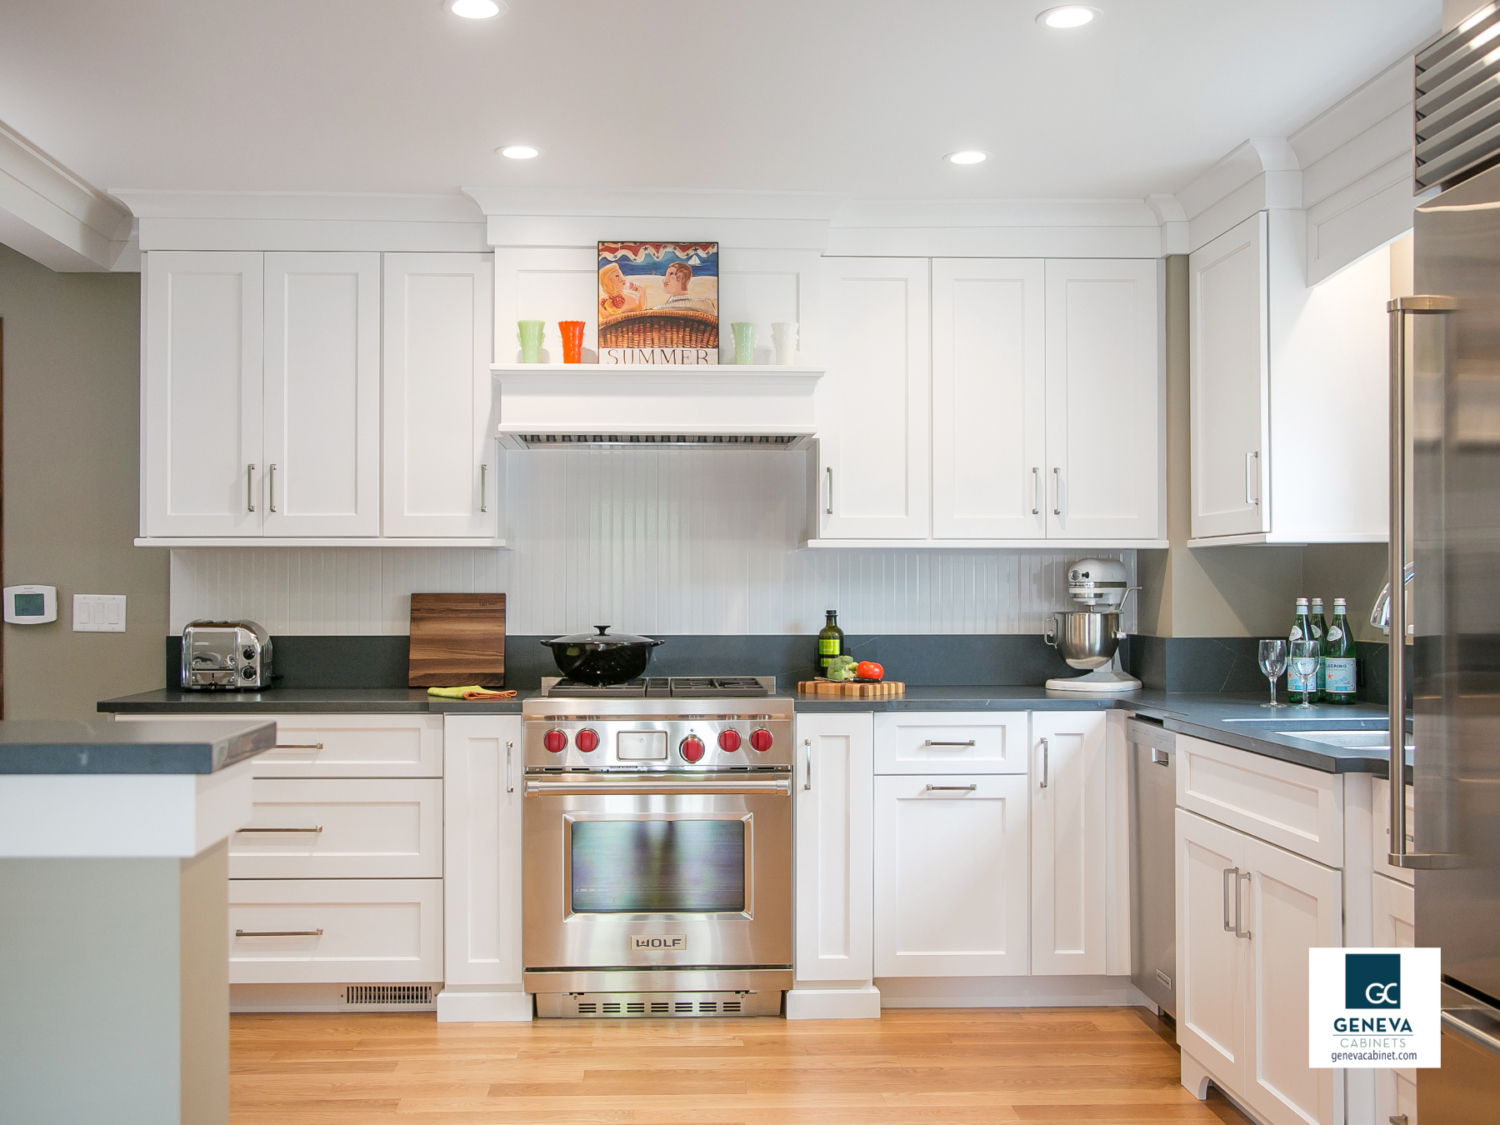 Kitchen Remodeling Tips to Get the Kitchen You Want - Geneva ...